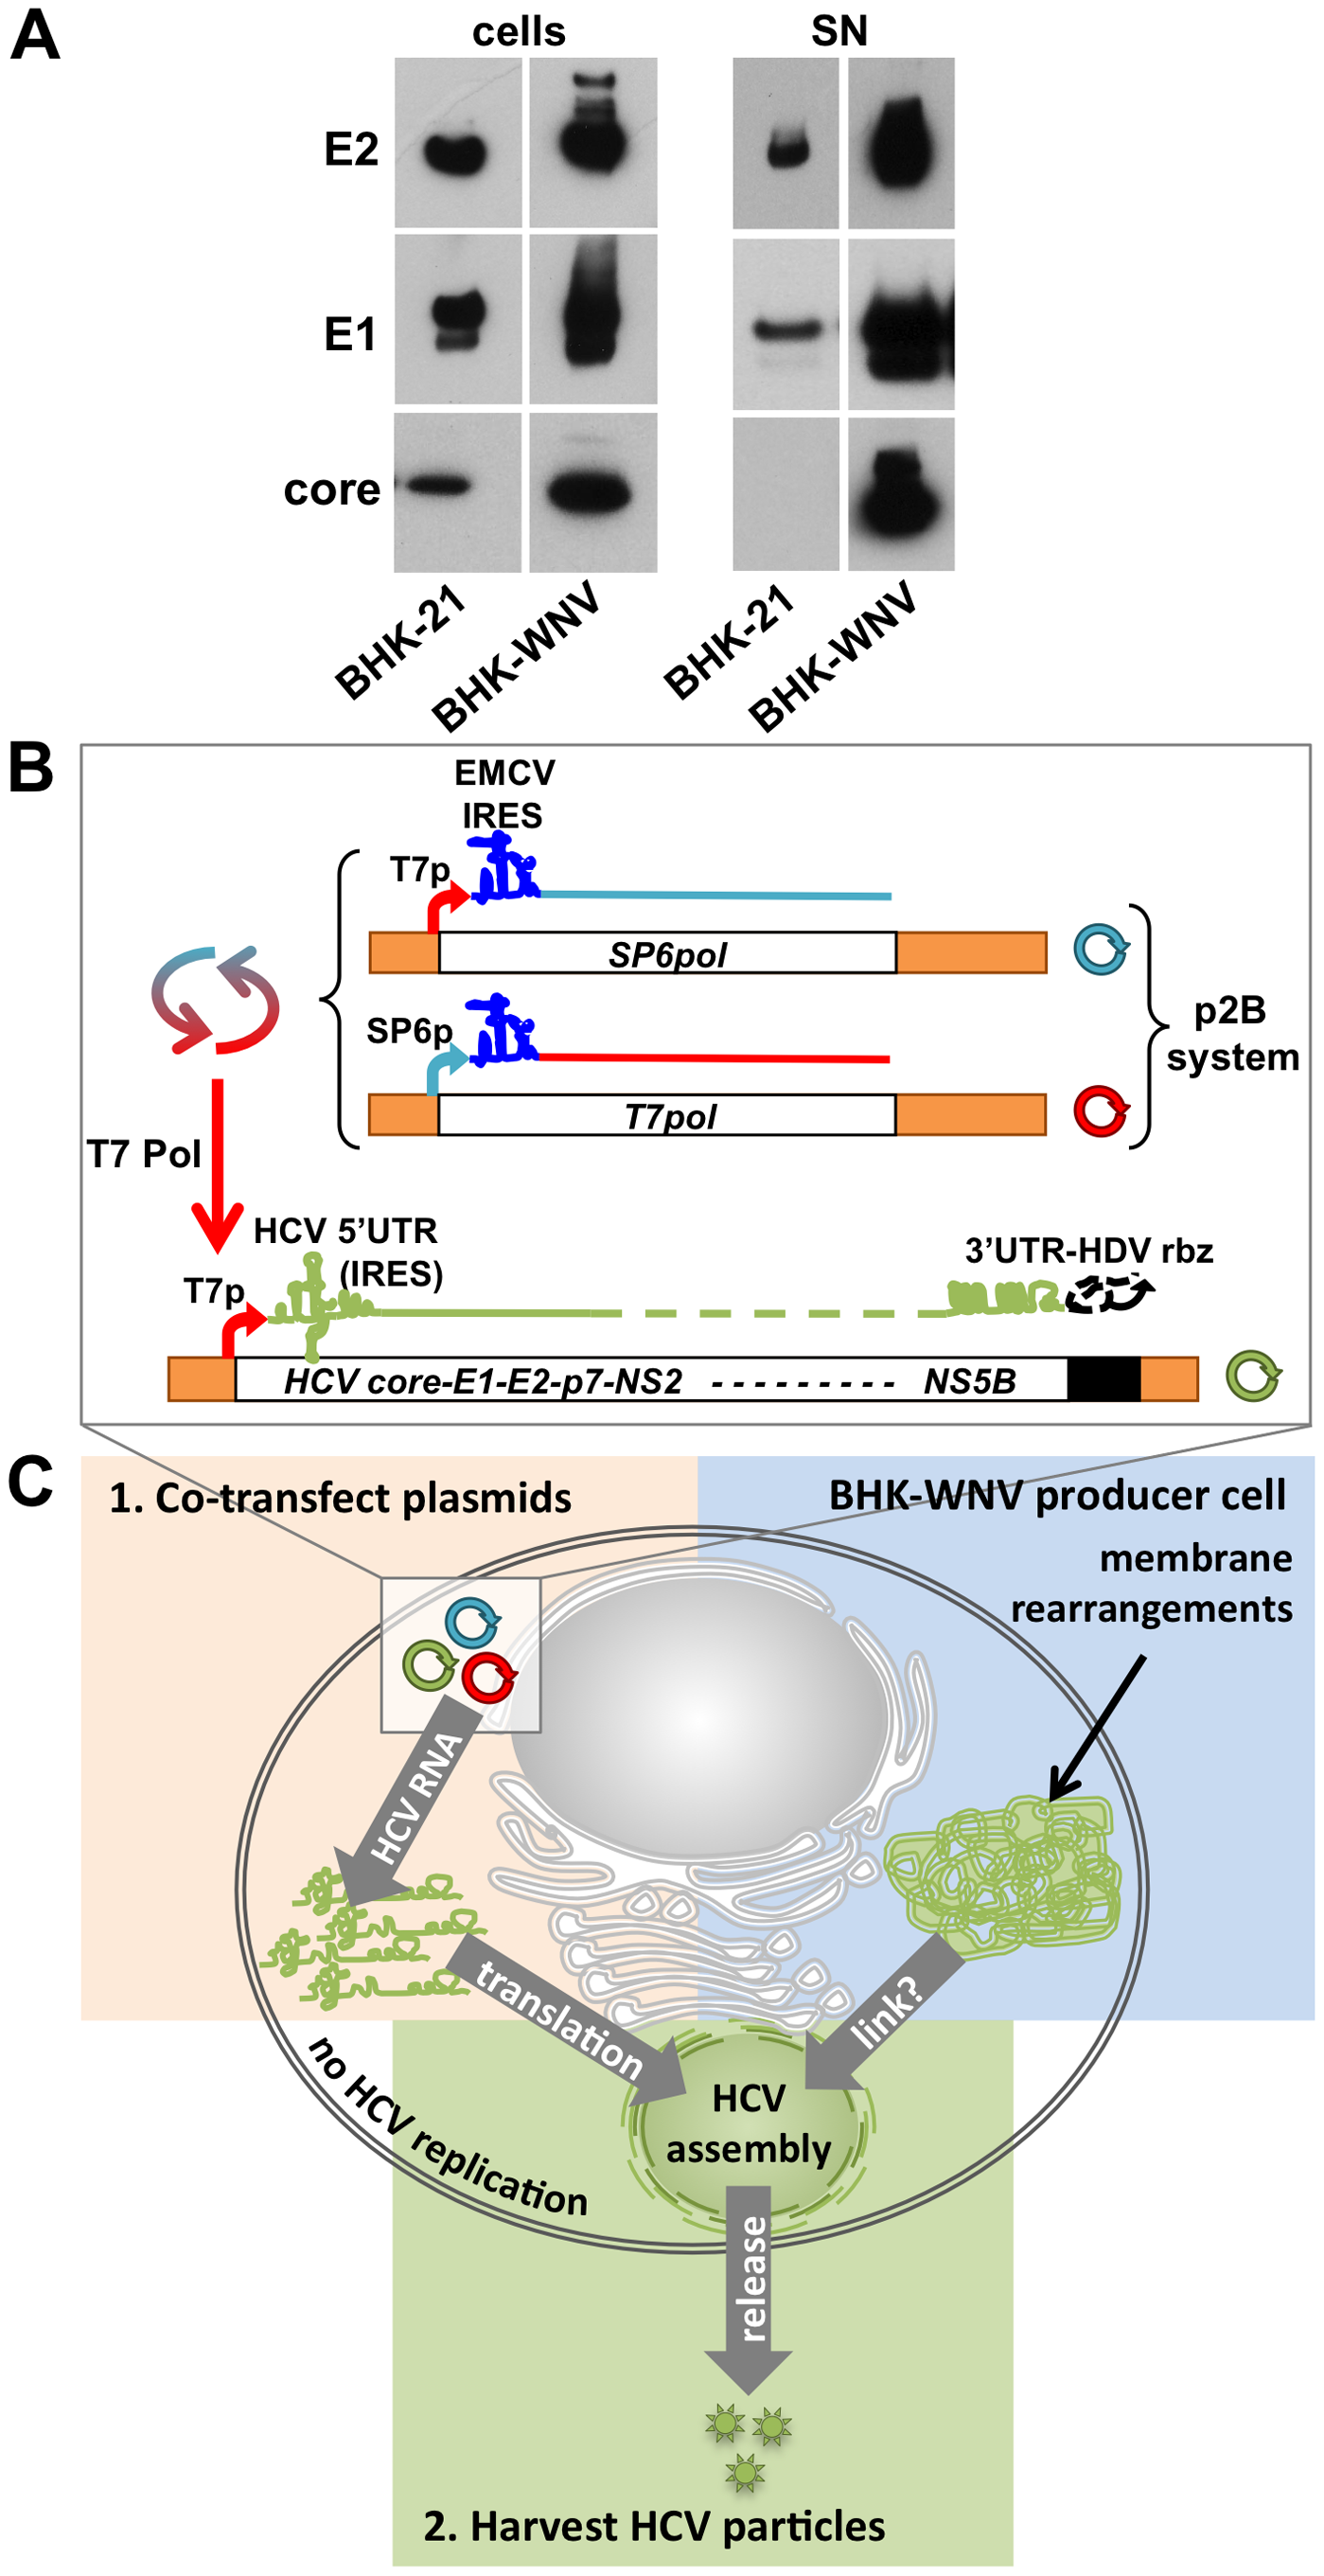 WNV subgenomic replicon enhances the release of HCV particles.